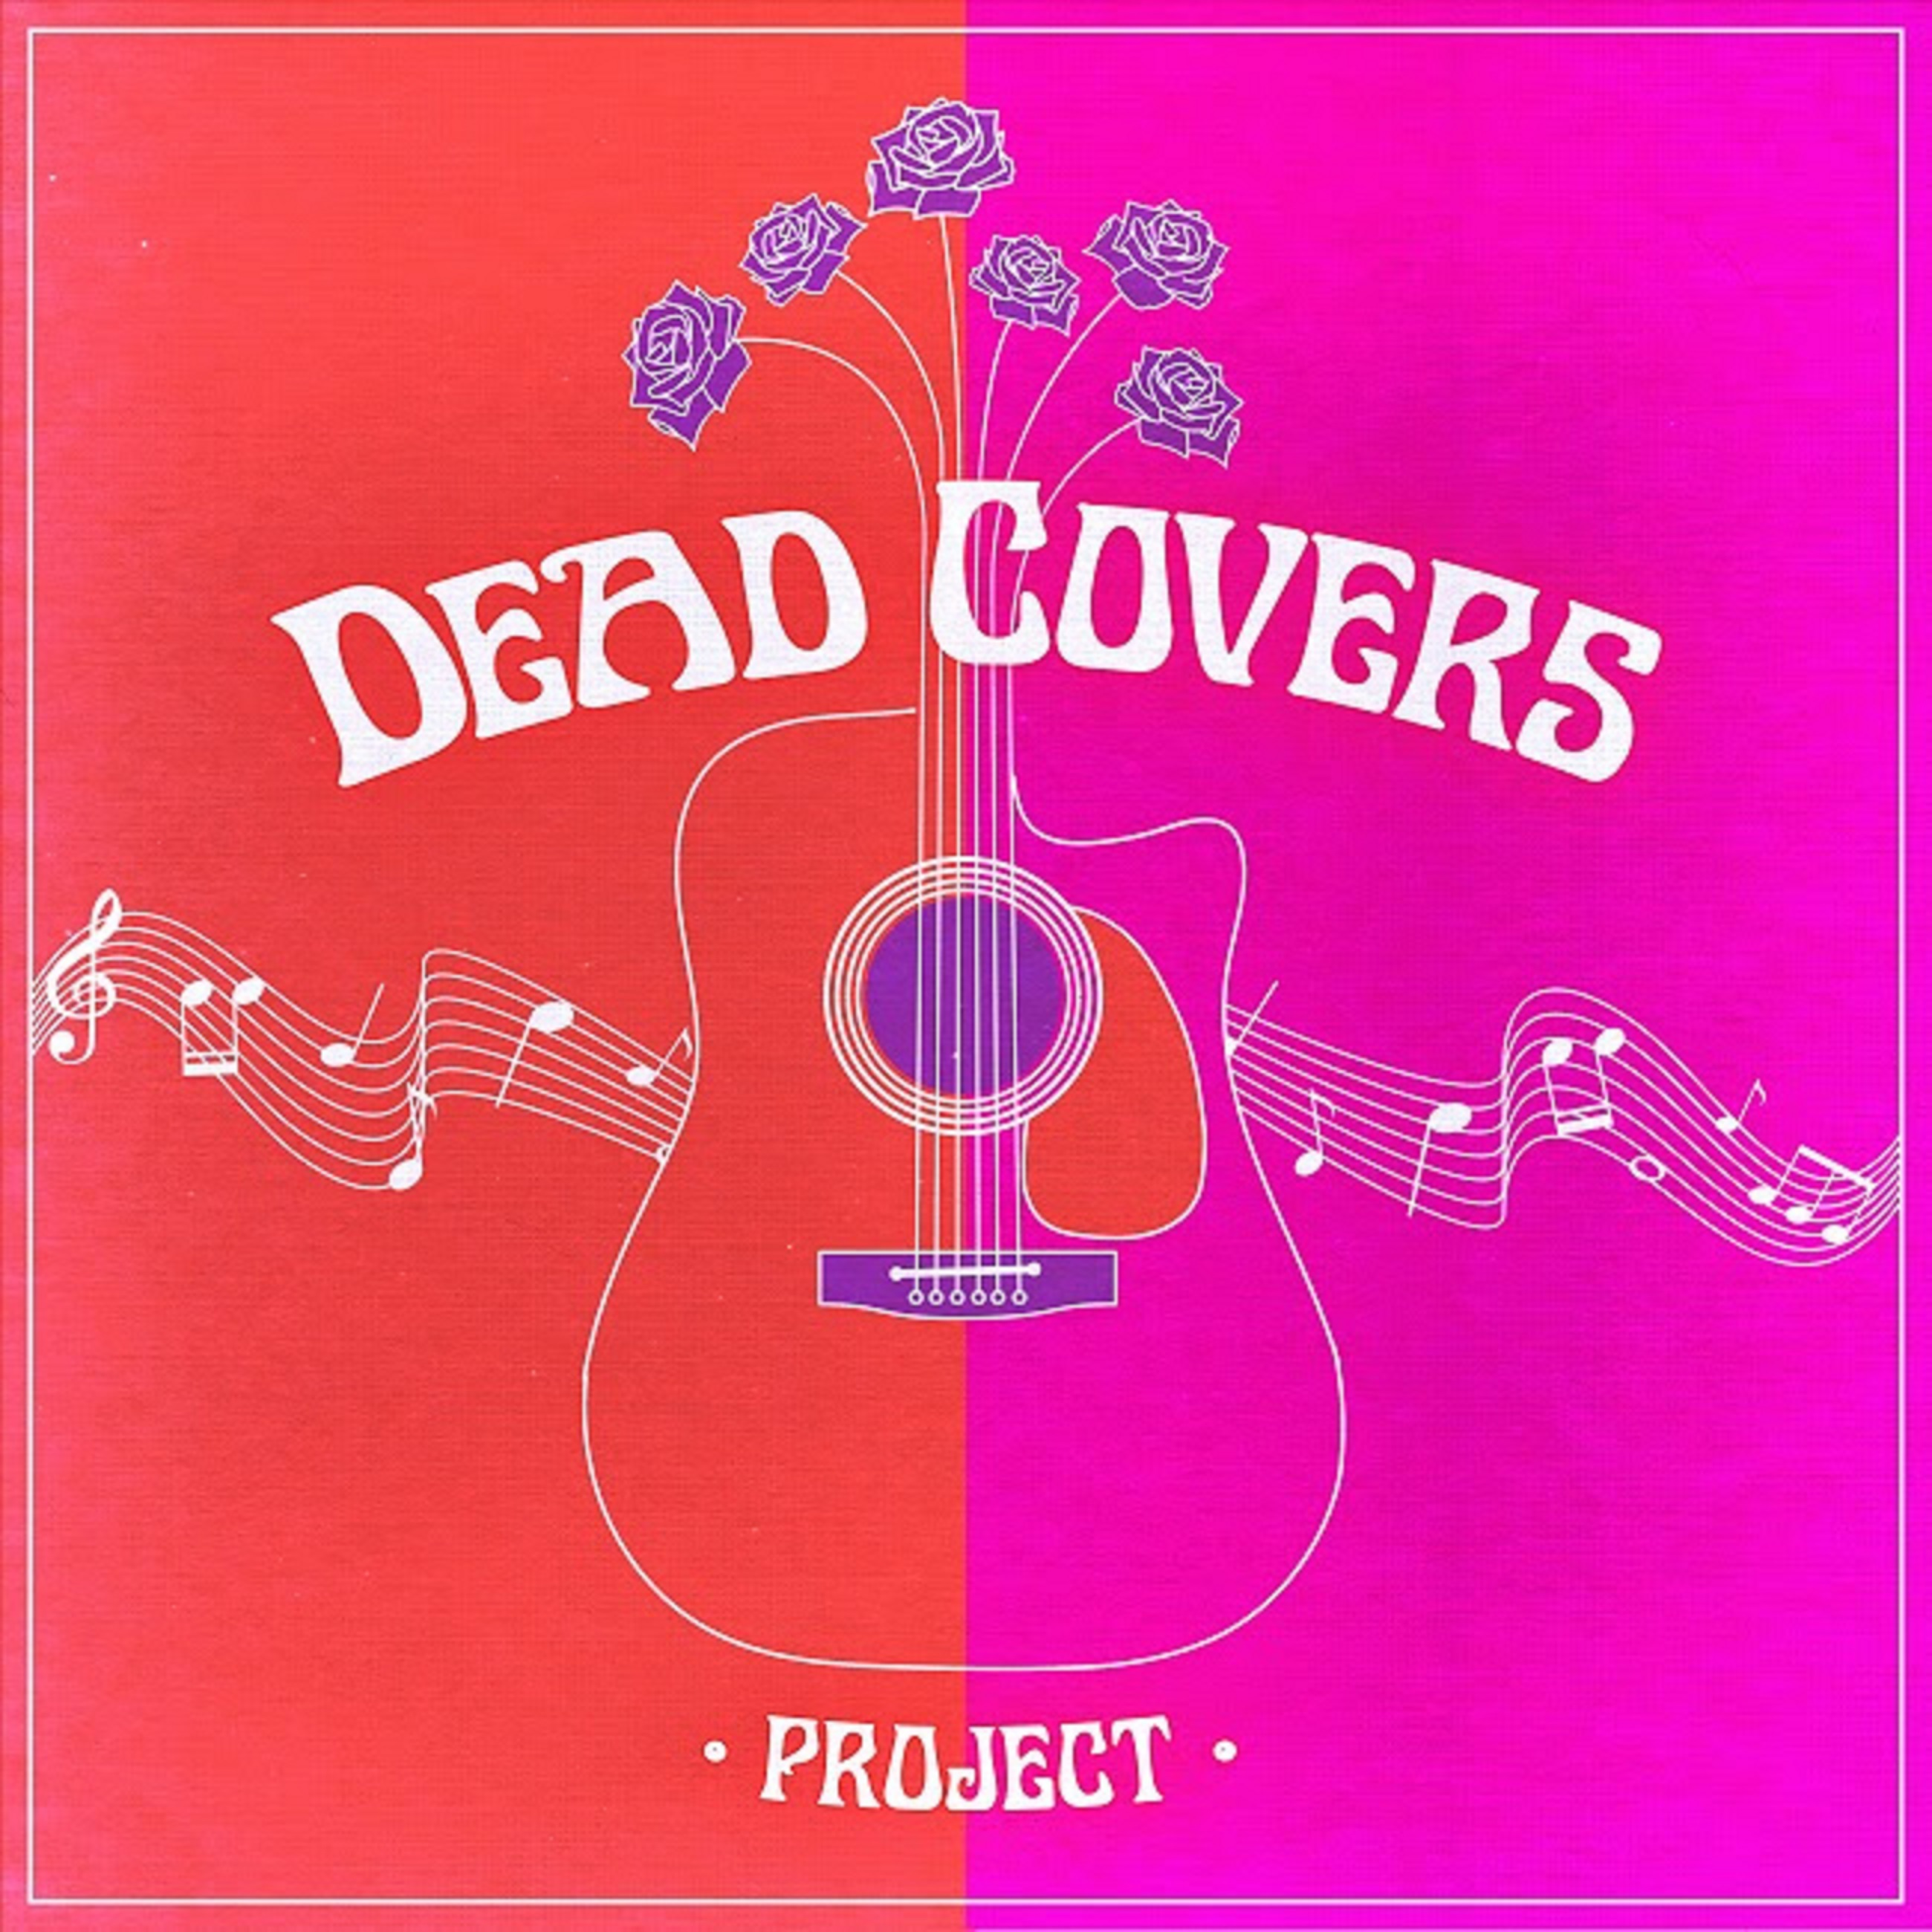 ANNOUNCING THE 2021 DEAD COVERS PROJECT